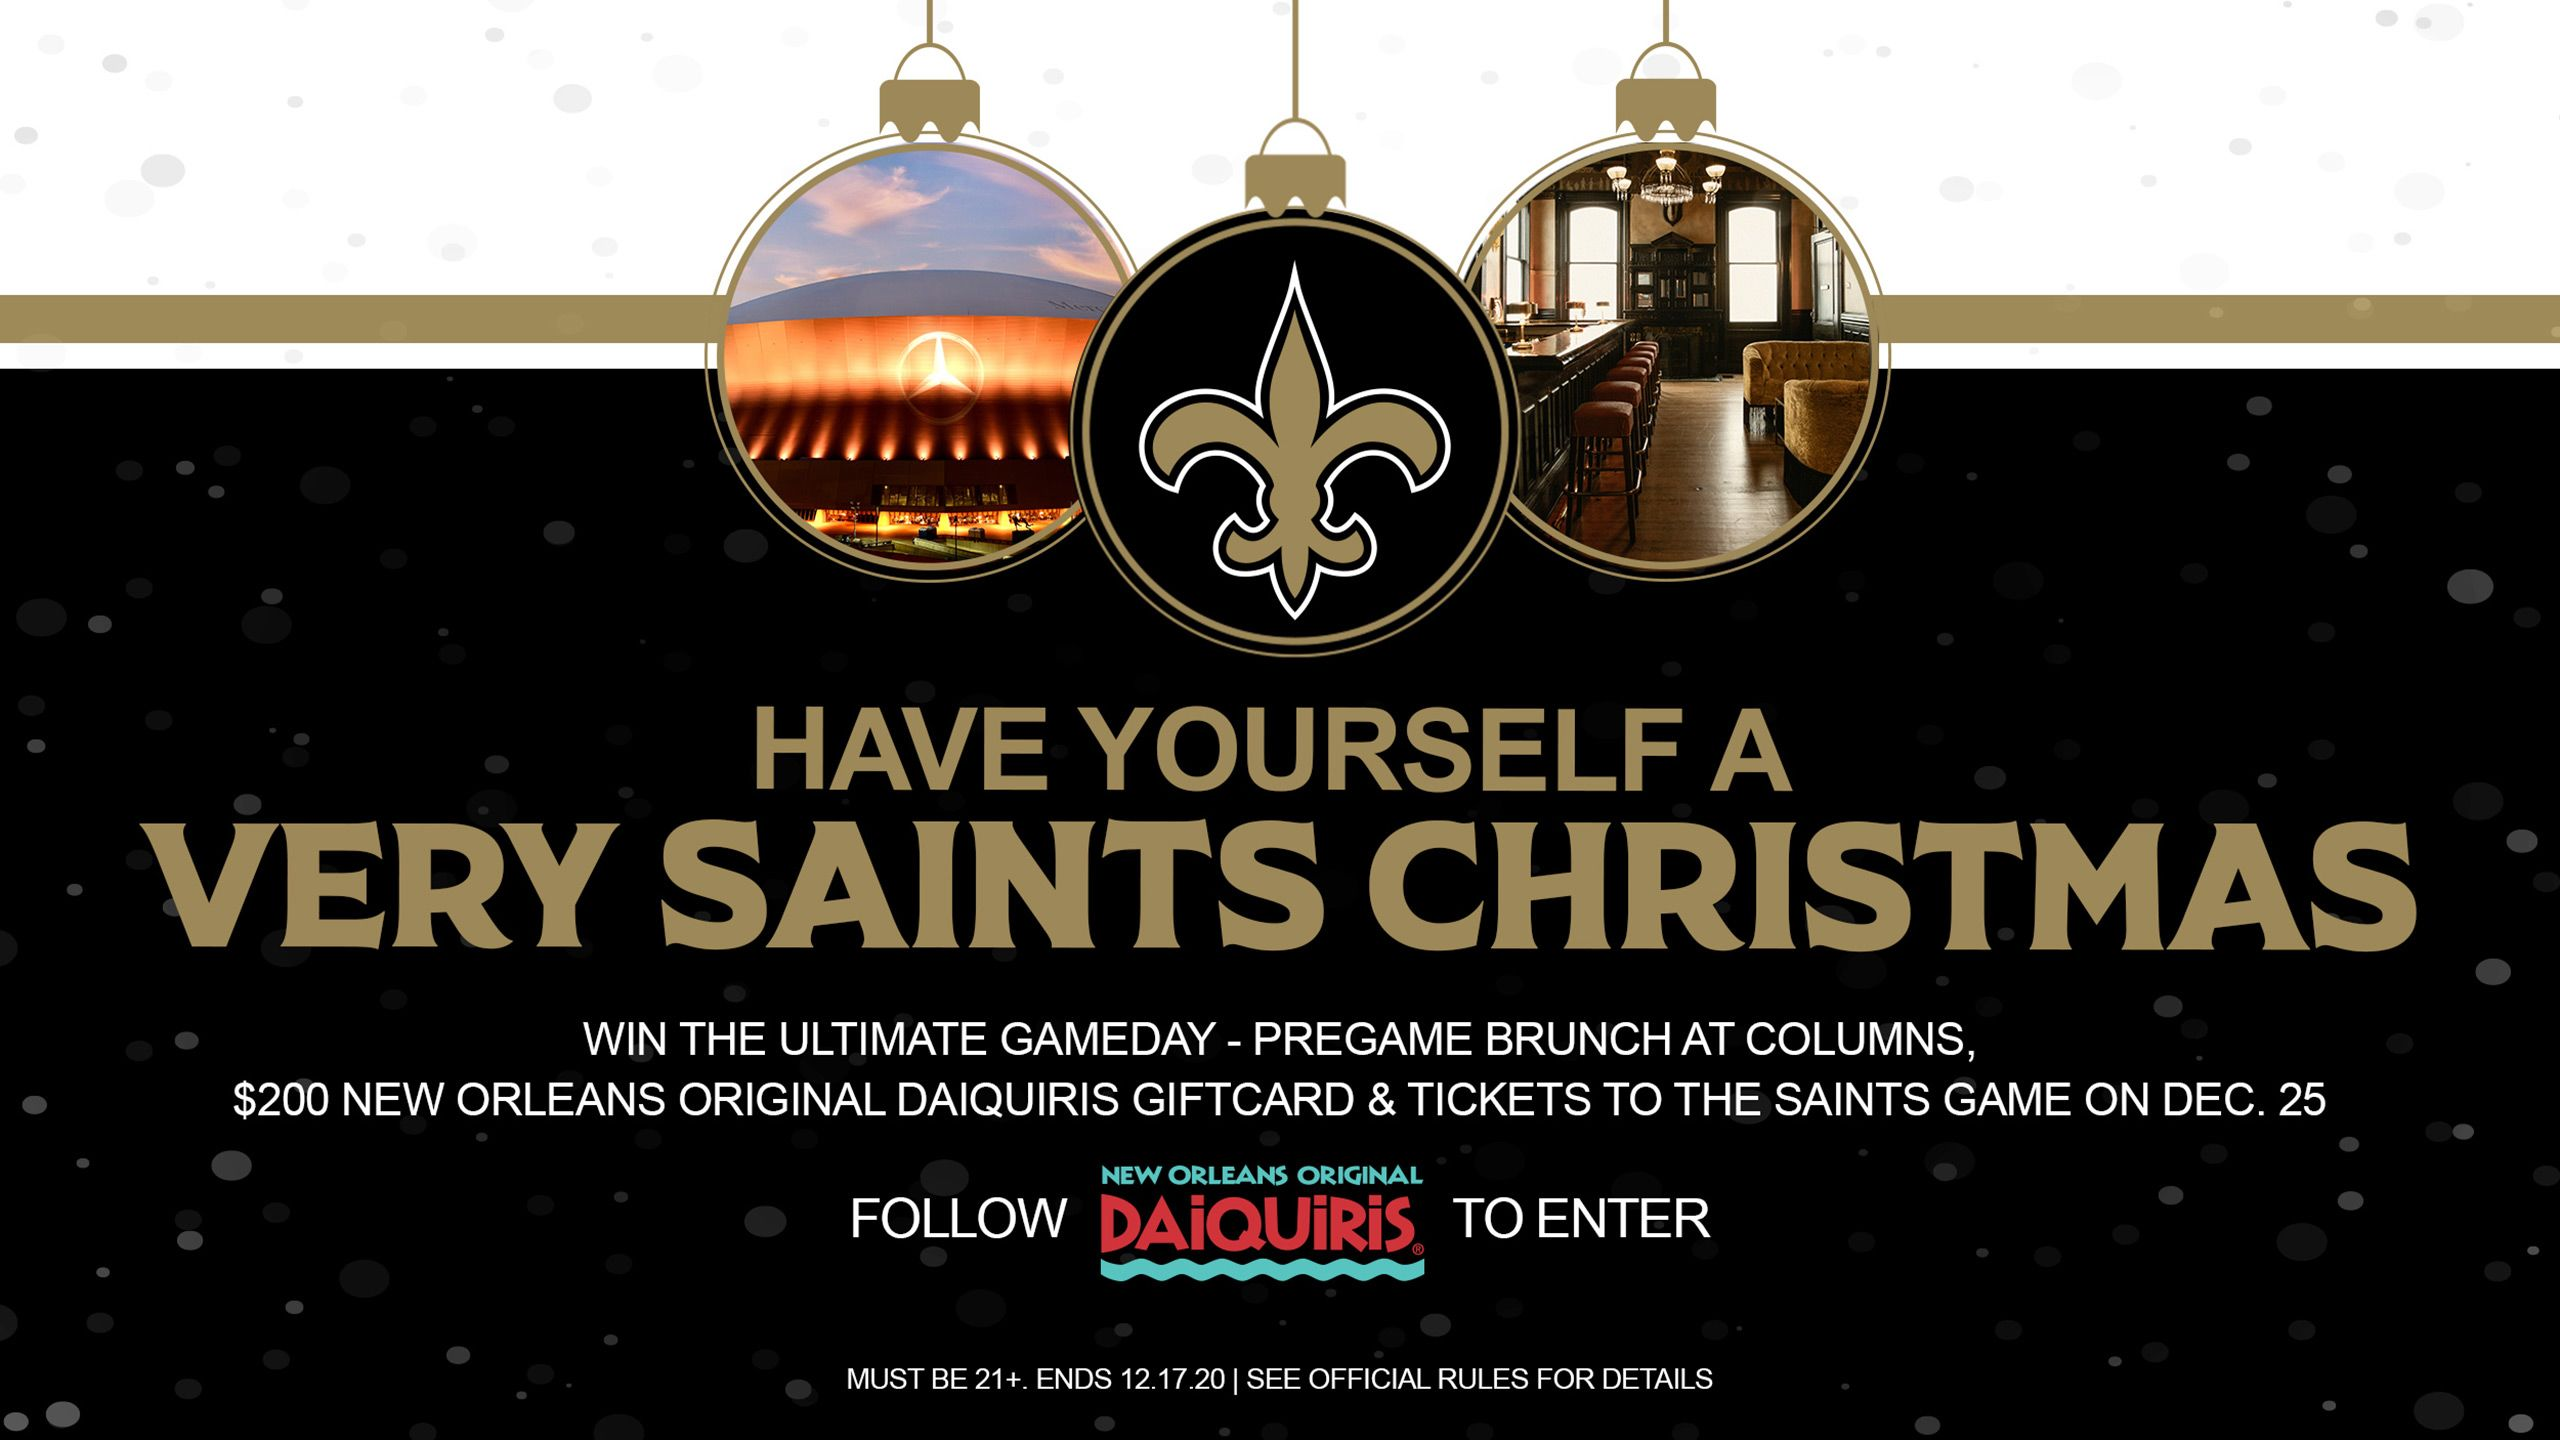 HAVE YOURSELF A VERY SAINTS CHRISTMAS